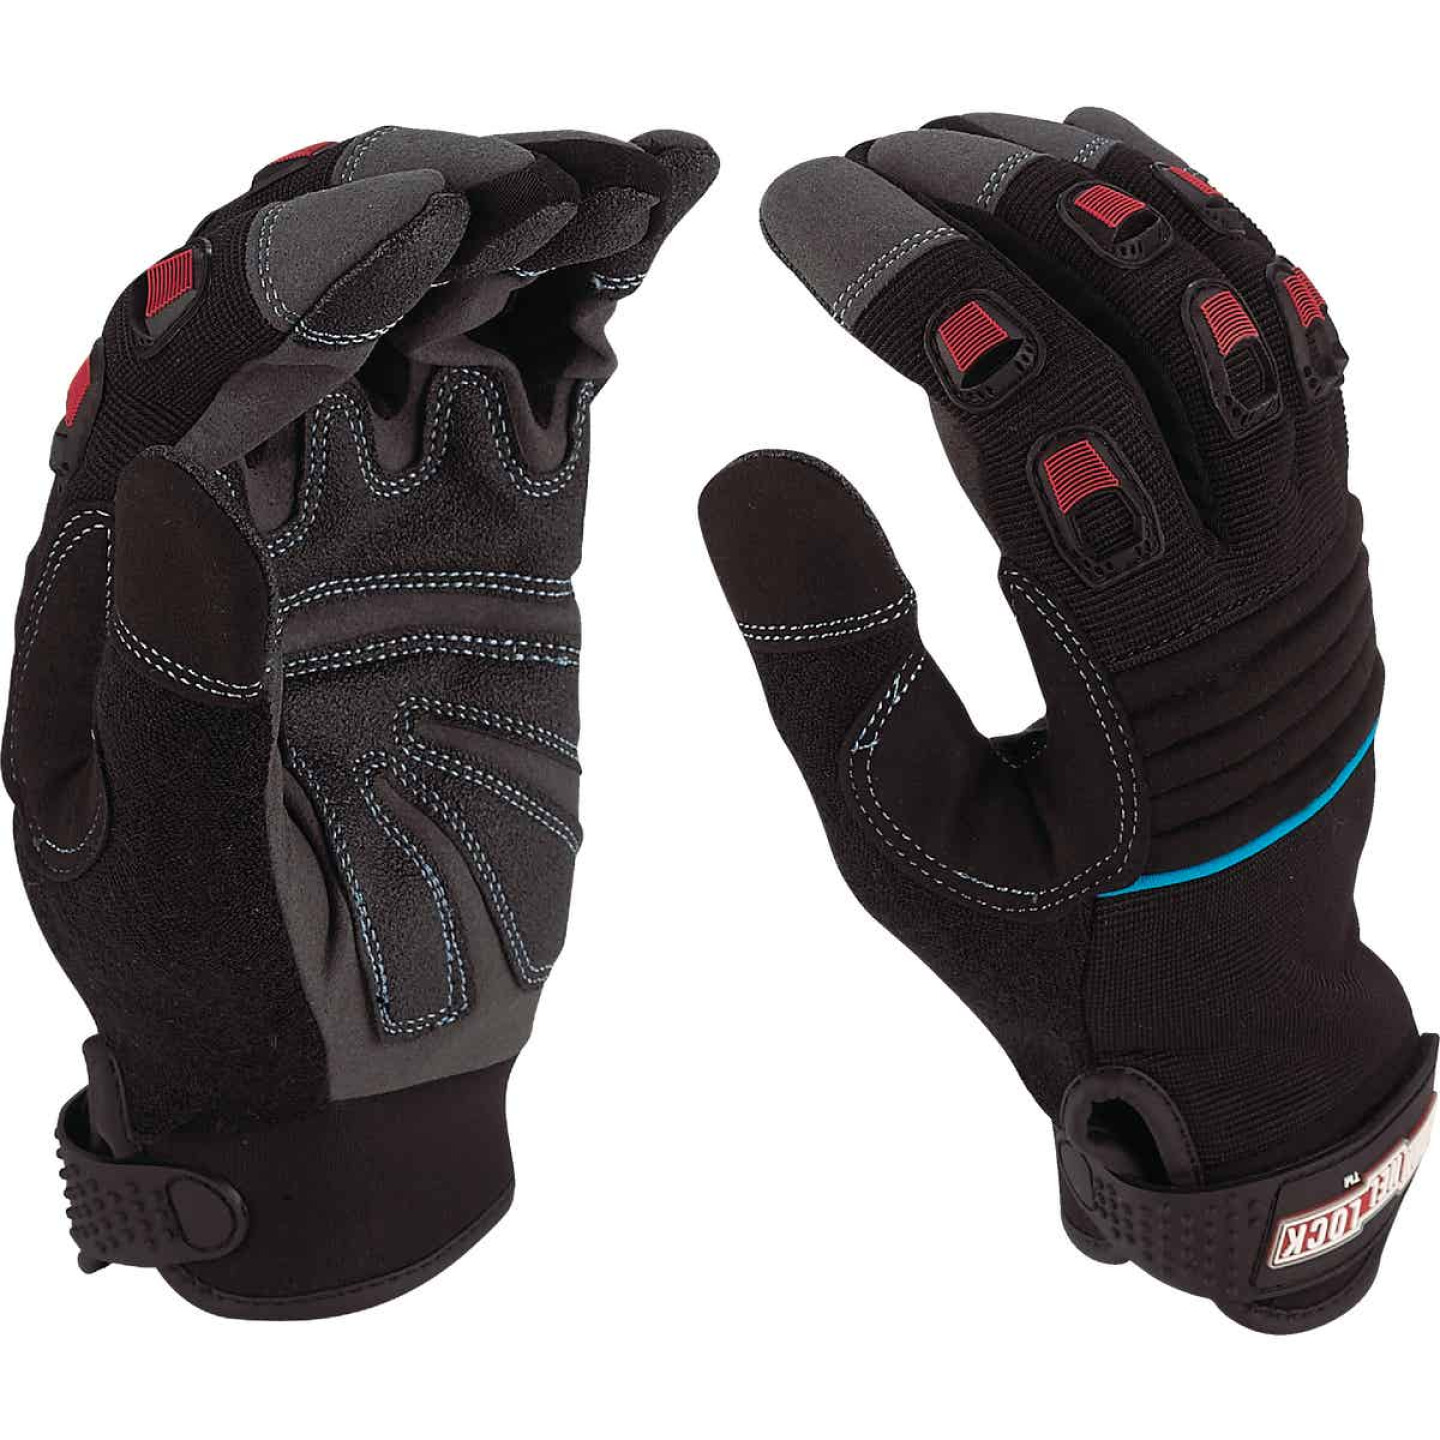 Channellock Men's XL Synthetic Leather Heavy-Duty High Performance Glove Image 4